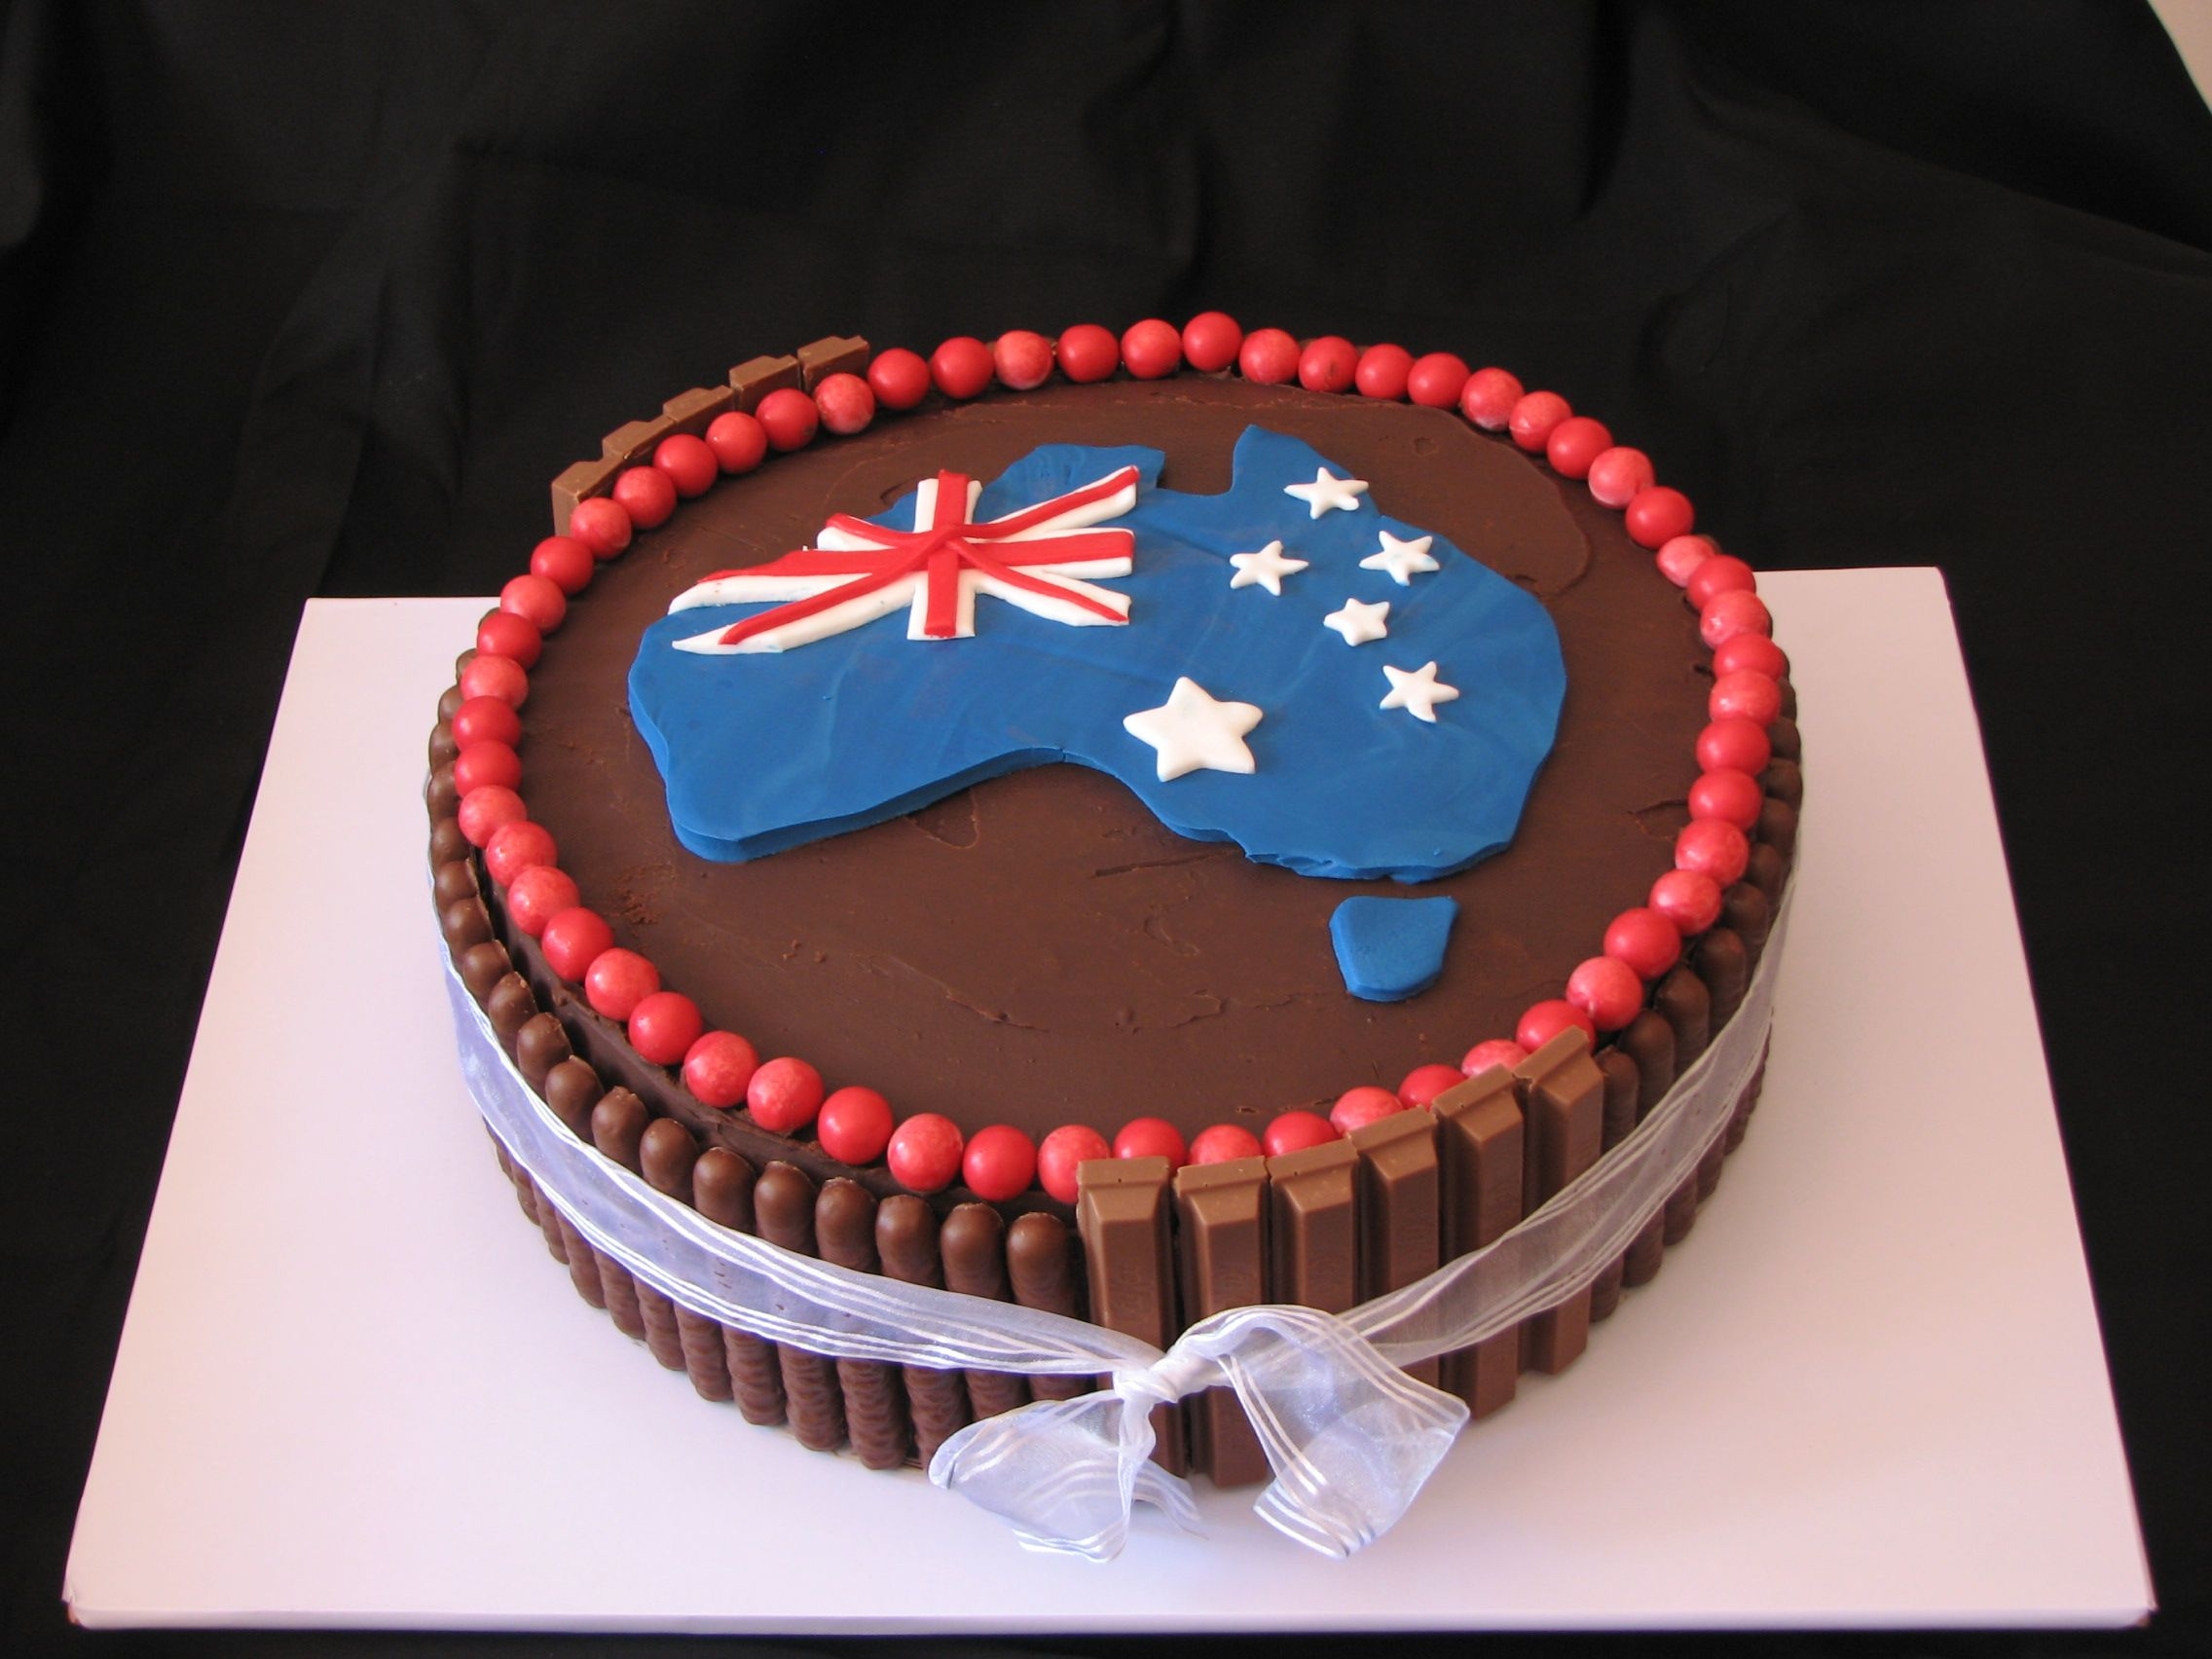 Best 10 Australia Day Ideas On Pinterest Australia Day Sydney - decorative items for home australia